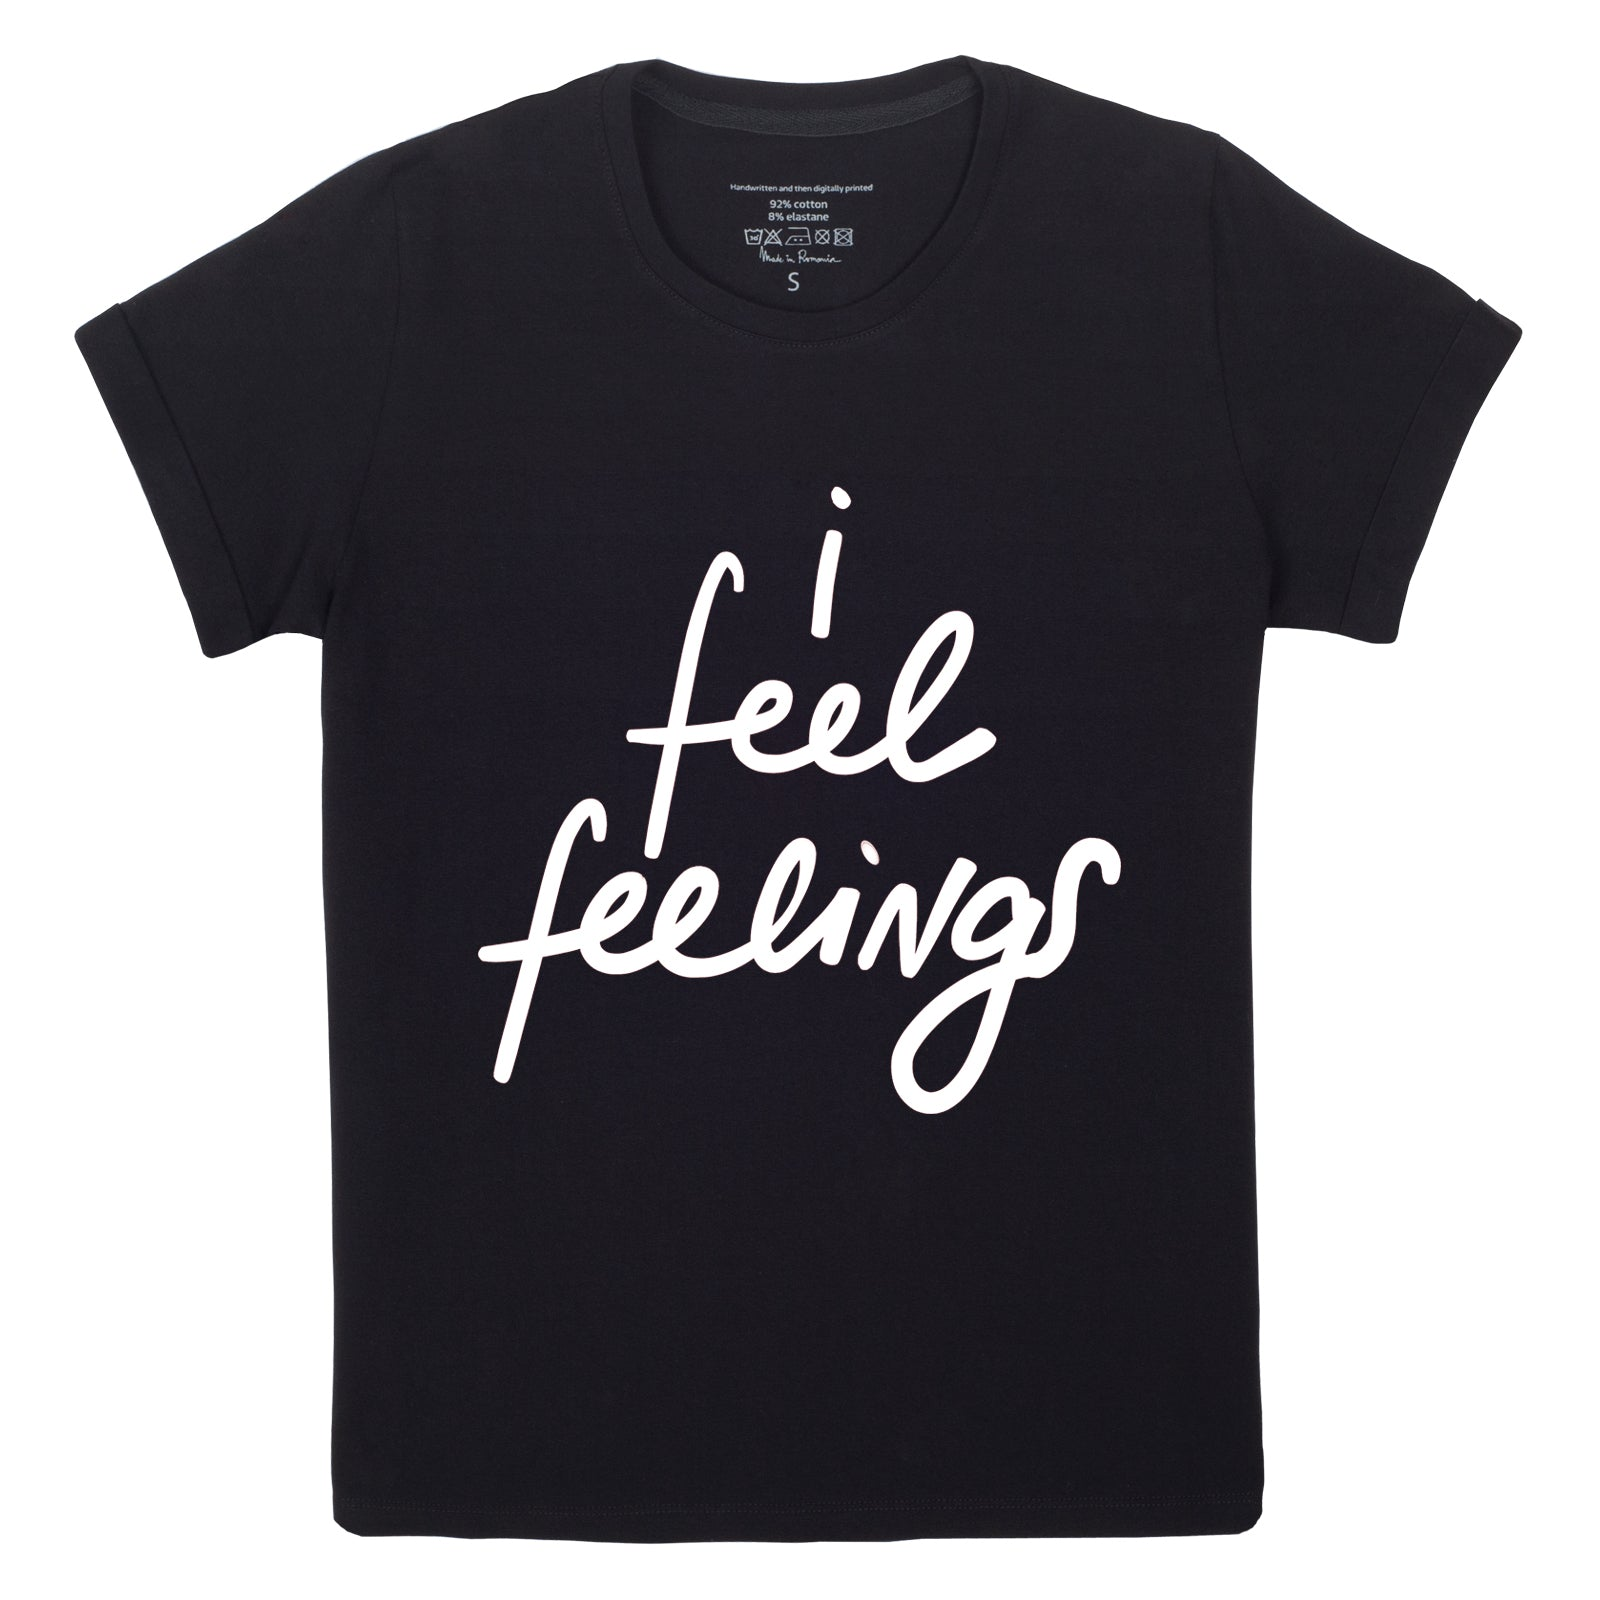 I FEEL FEELINGS Tshirt